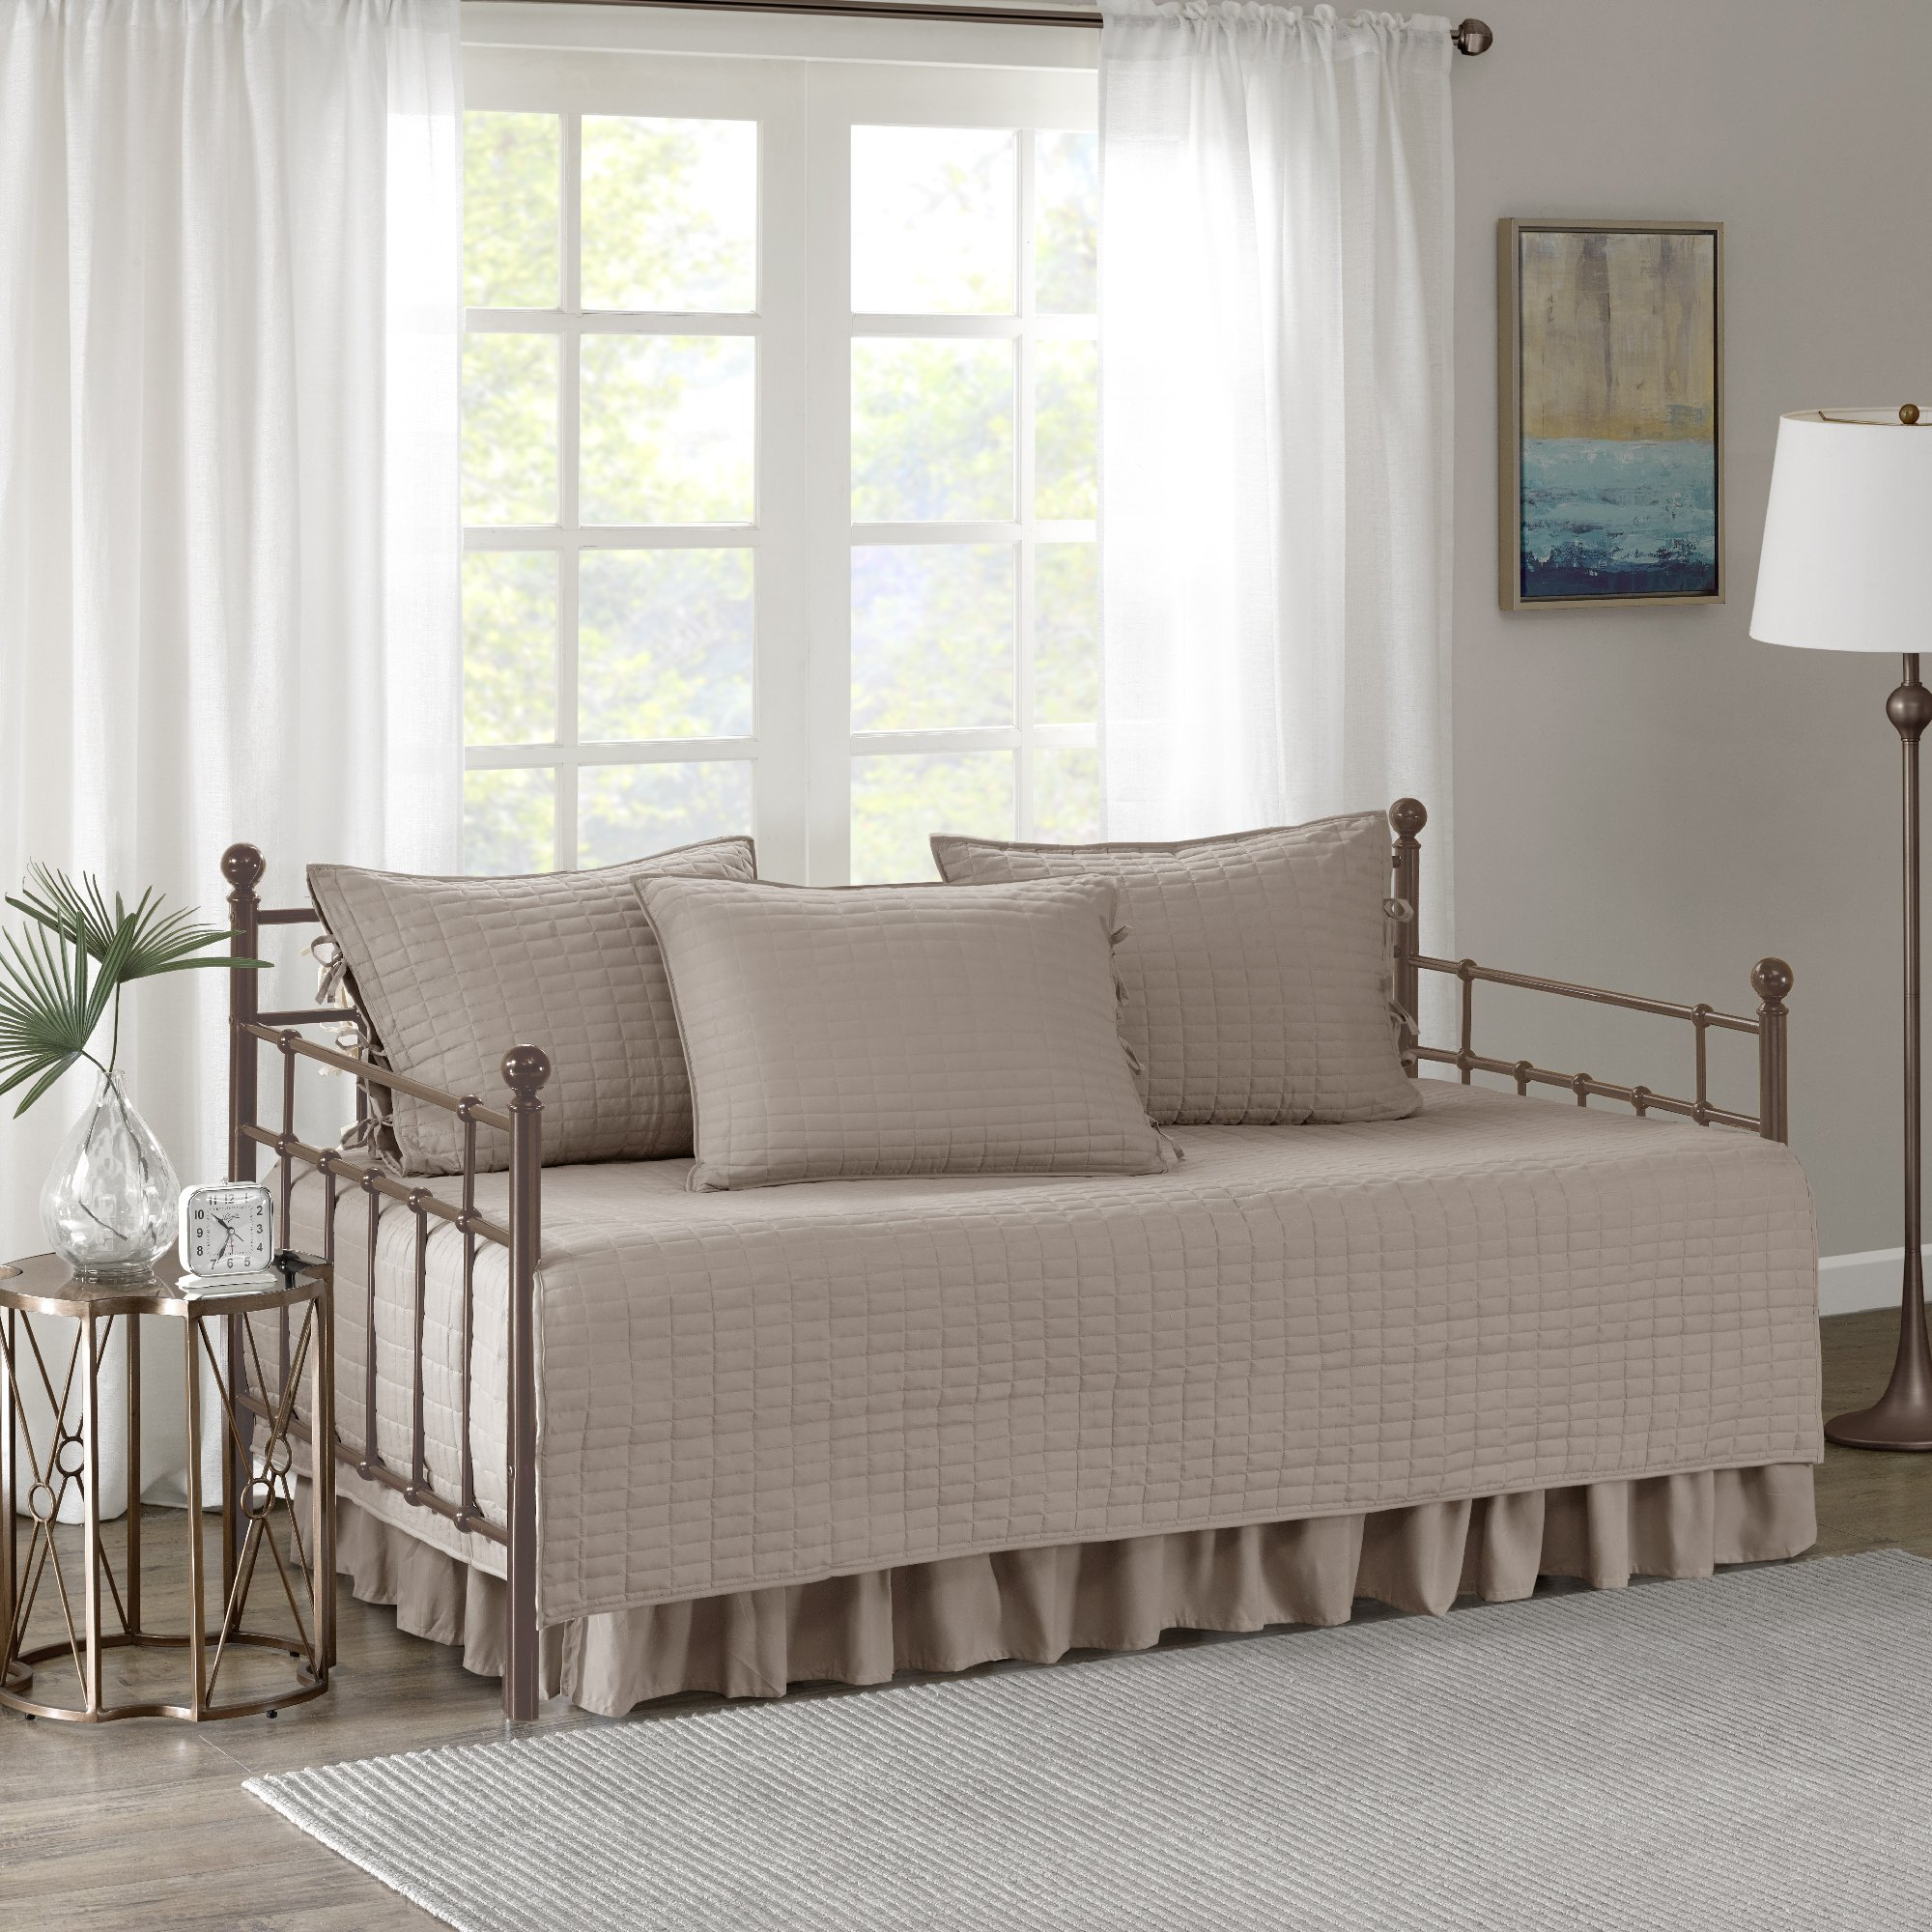 Comfort Spaces - Kienna Daybed Set - Stitched Quilt Pattern - 5 Pieces - Taupe - Includes 1 Bed Spread, 1 Bed Skirt and 3 Pillow Cases